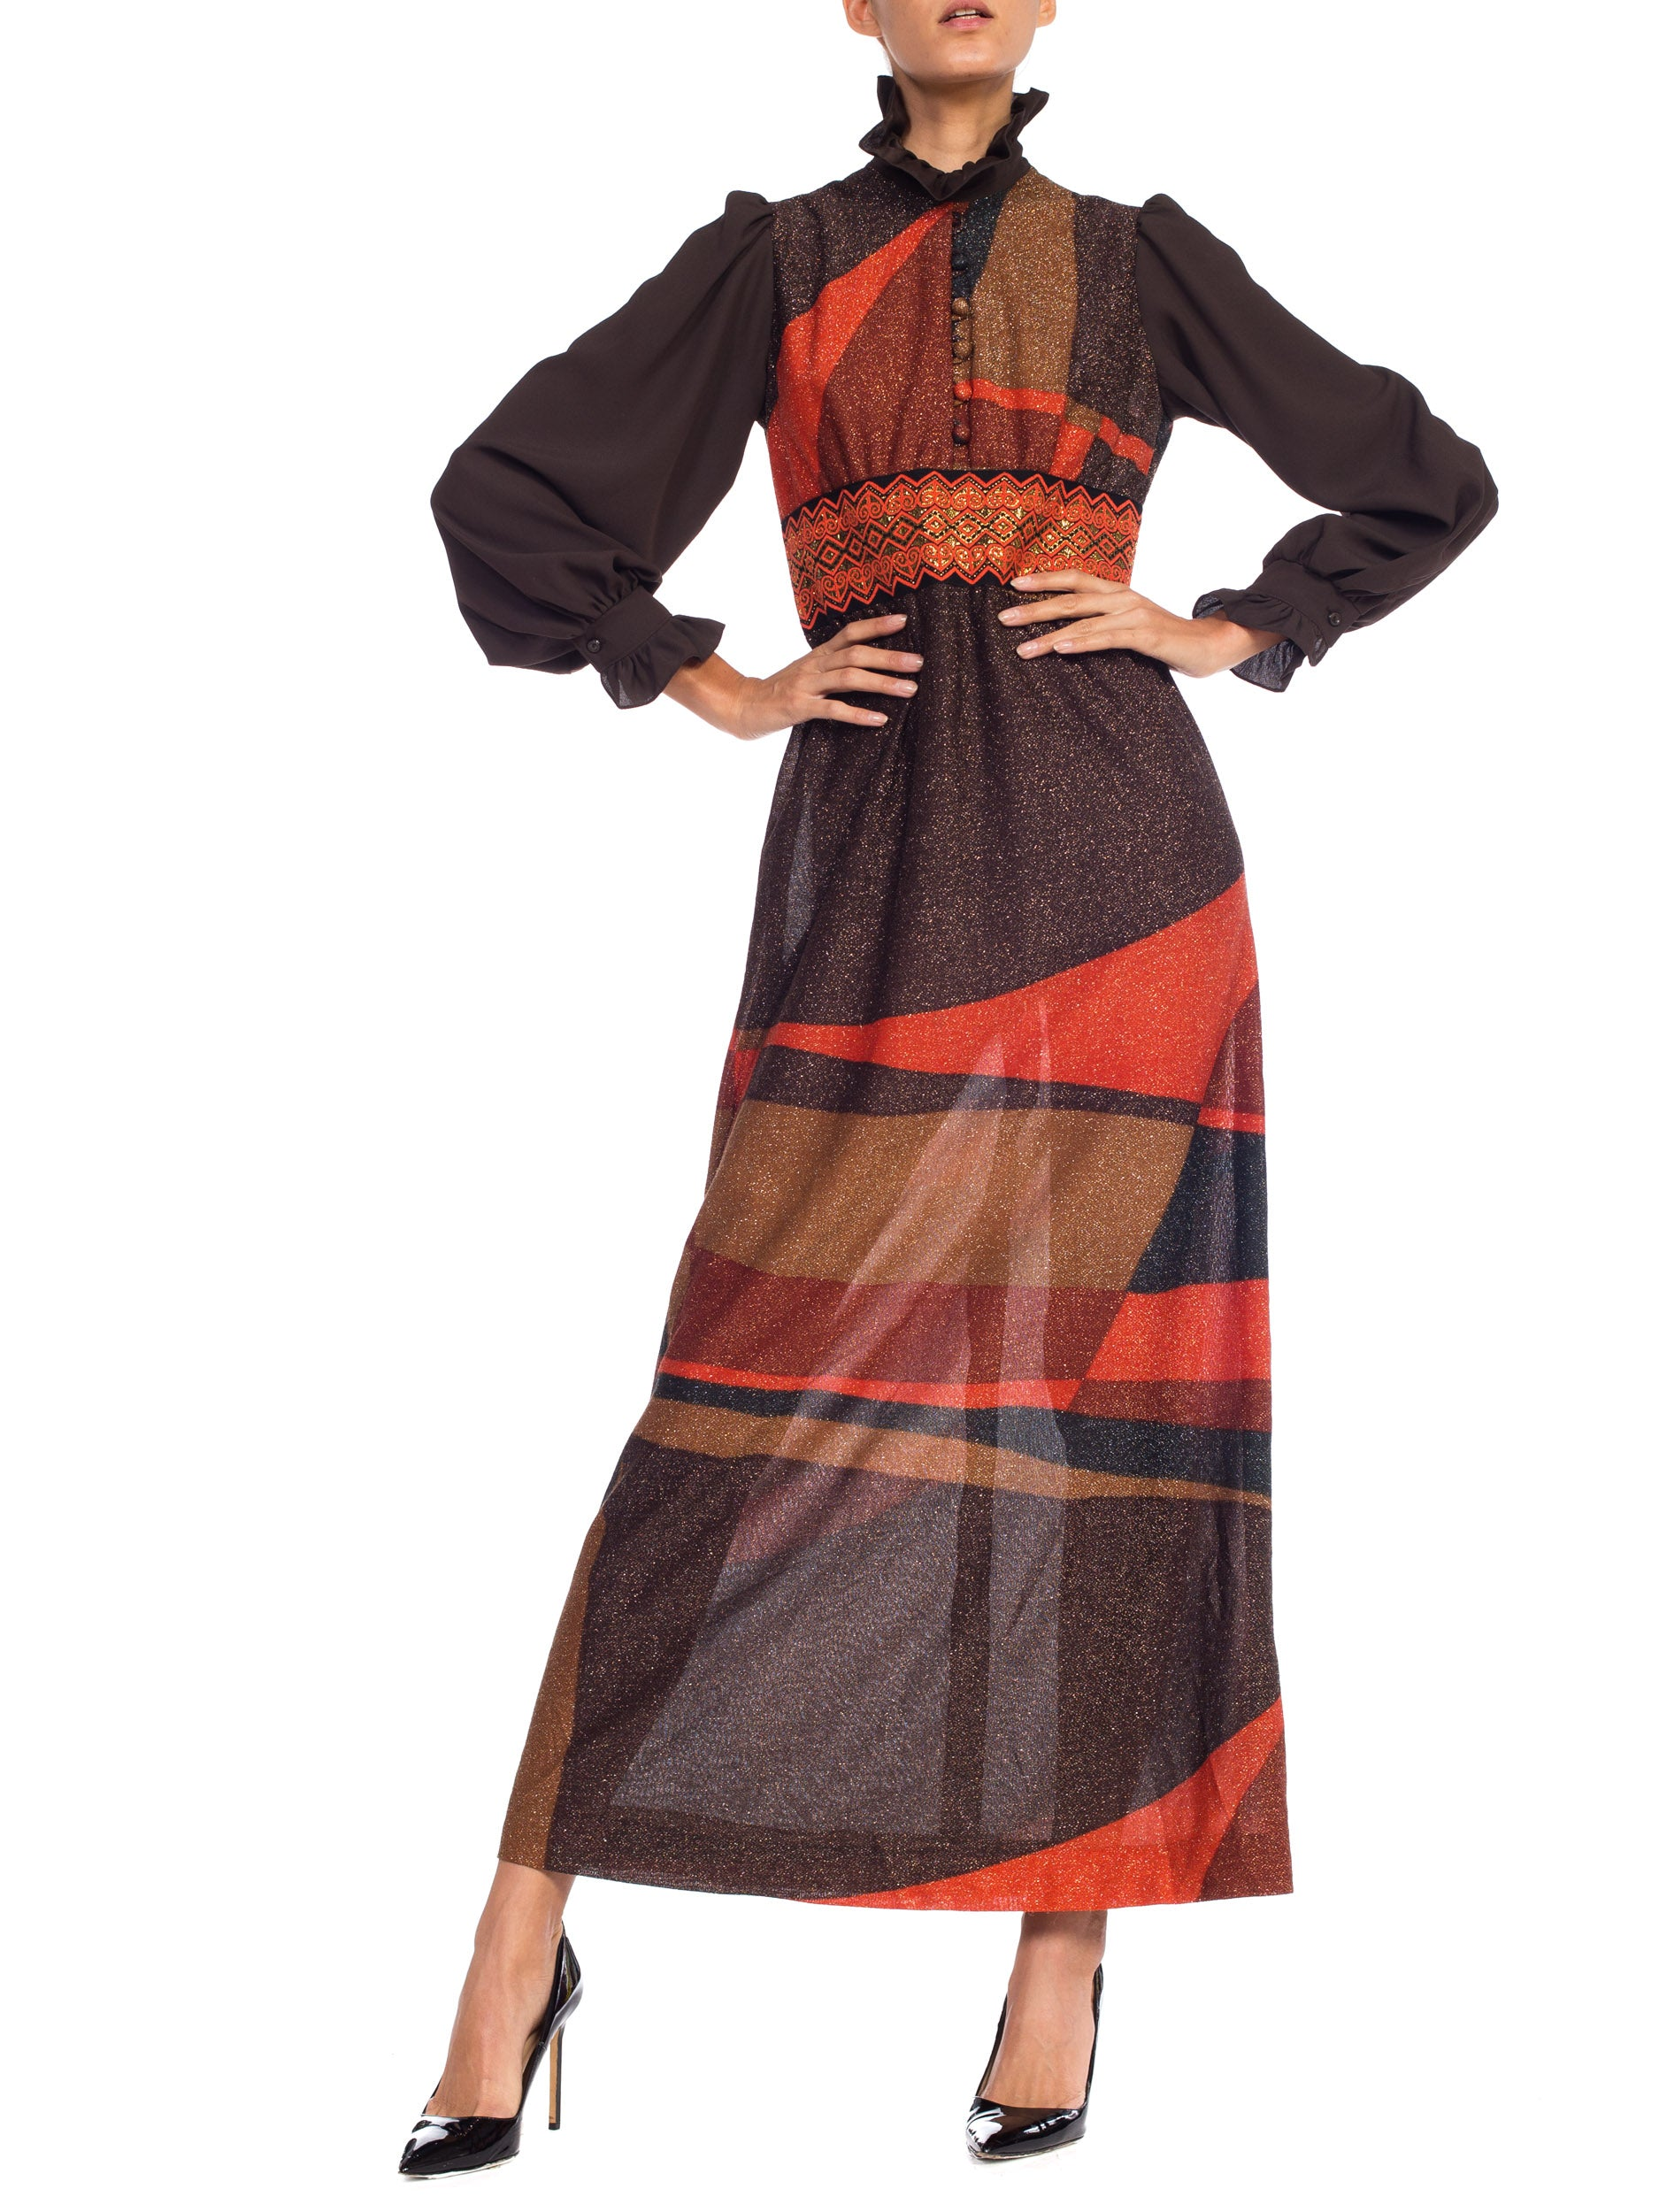 1970S Orange & Brown Poly/Lurex Knit Victorian Revival Dress From Scandinavia